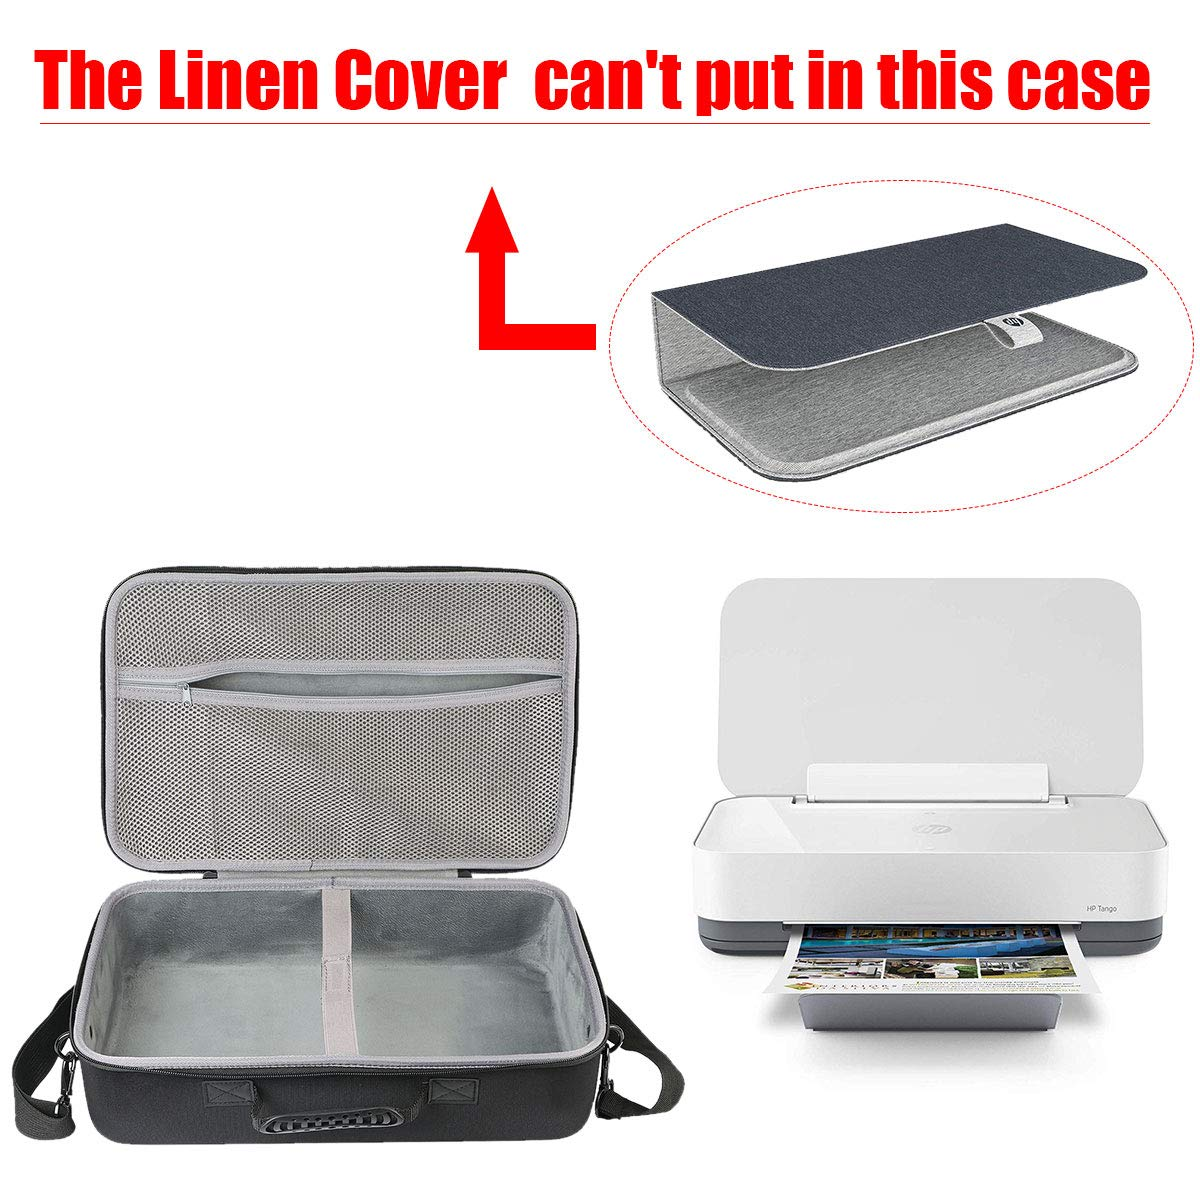 co2crea Hard Travel Case for HP Tango Smart Home Printer 2RY54A (Can't to fit HP Tango Cover) by Co2Crea (Image #2)